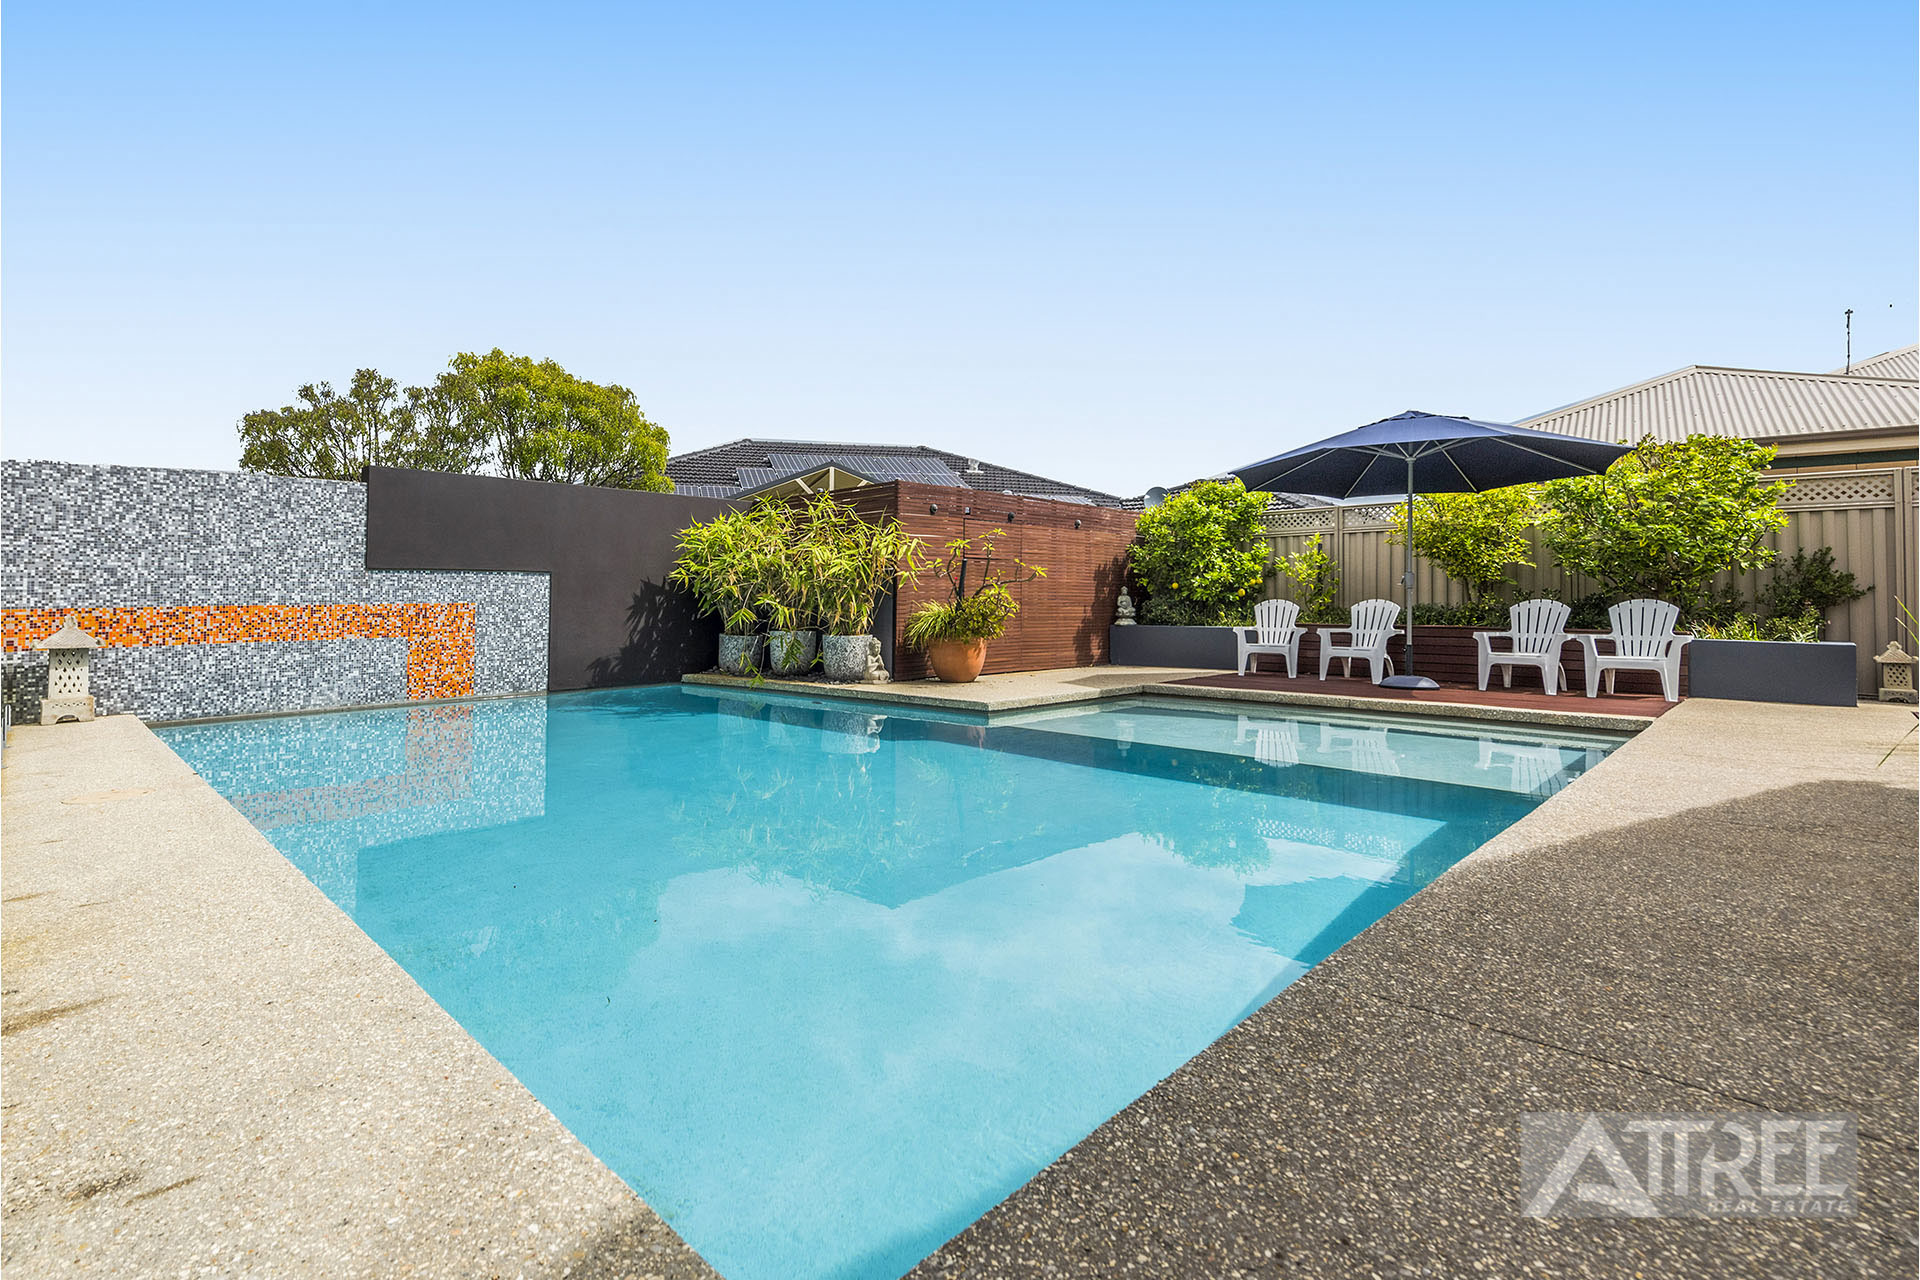 Property for sale in HARRISDALE, 6 Northerly Drive : Attree Real Estate